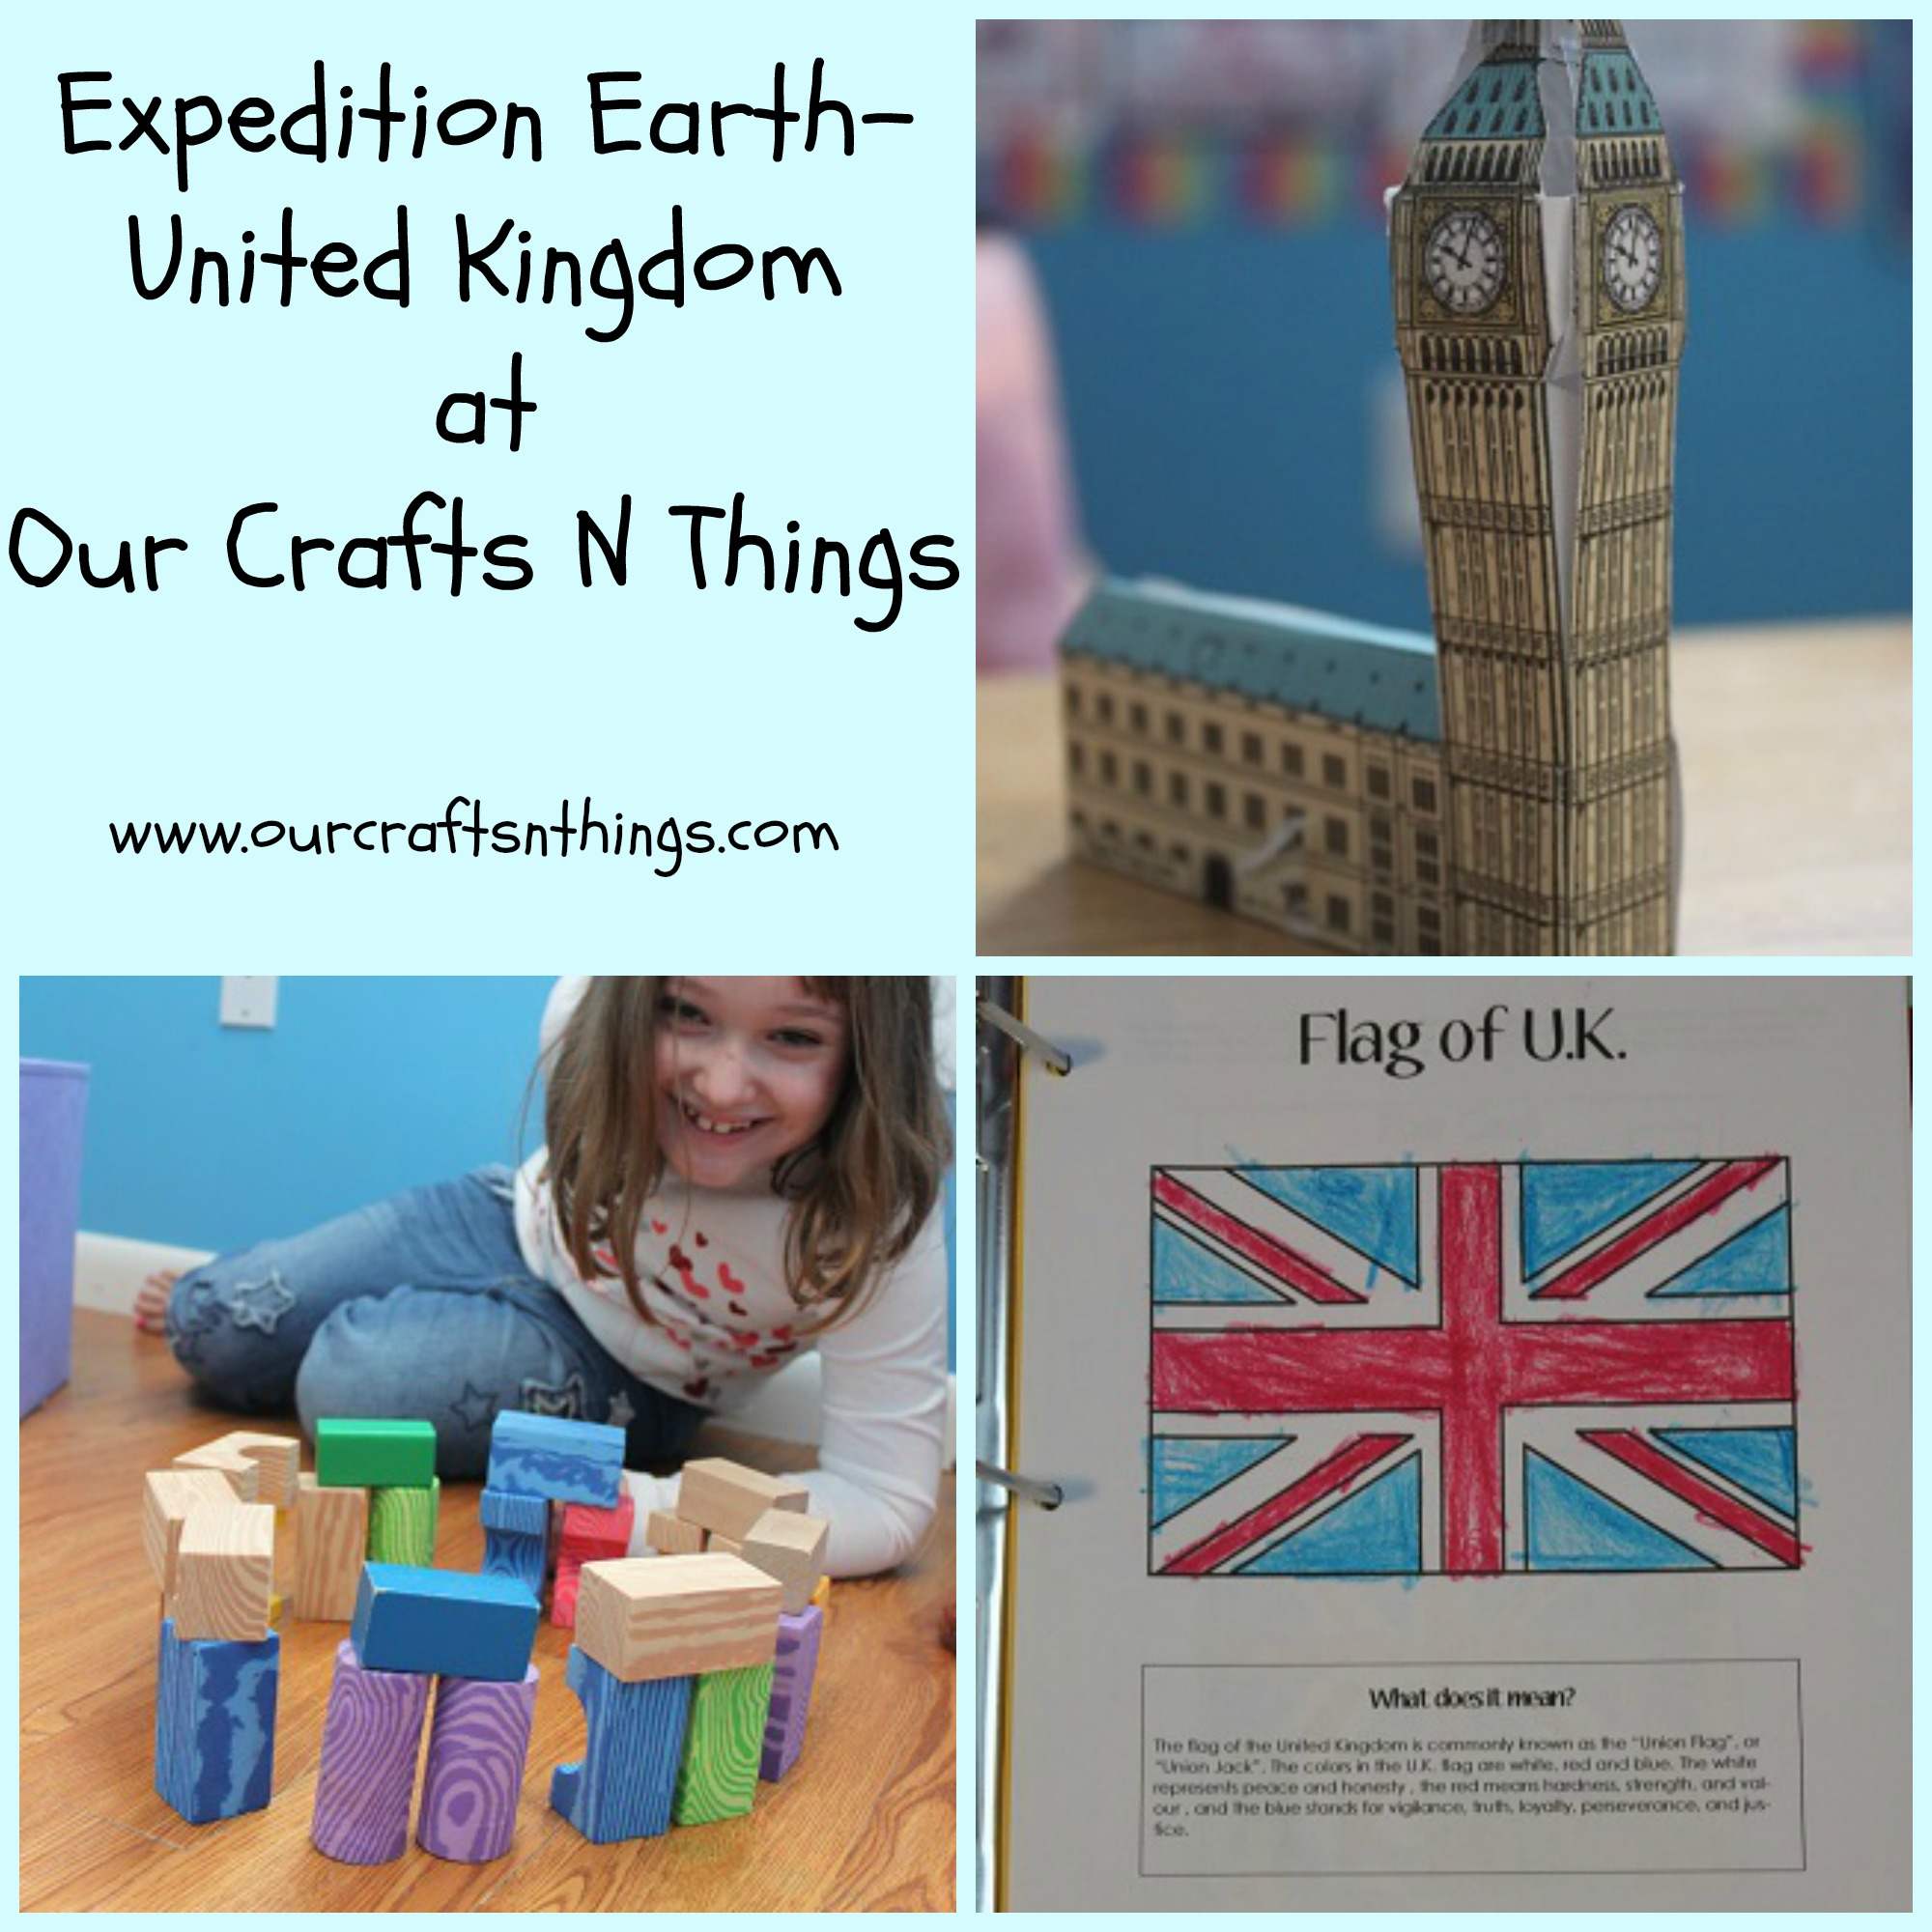 Expedition Earth- United Kingdom